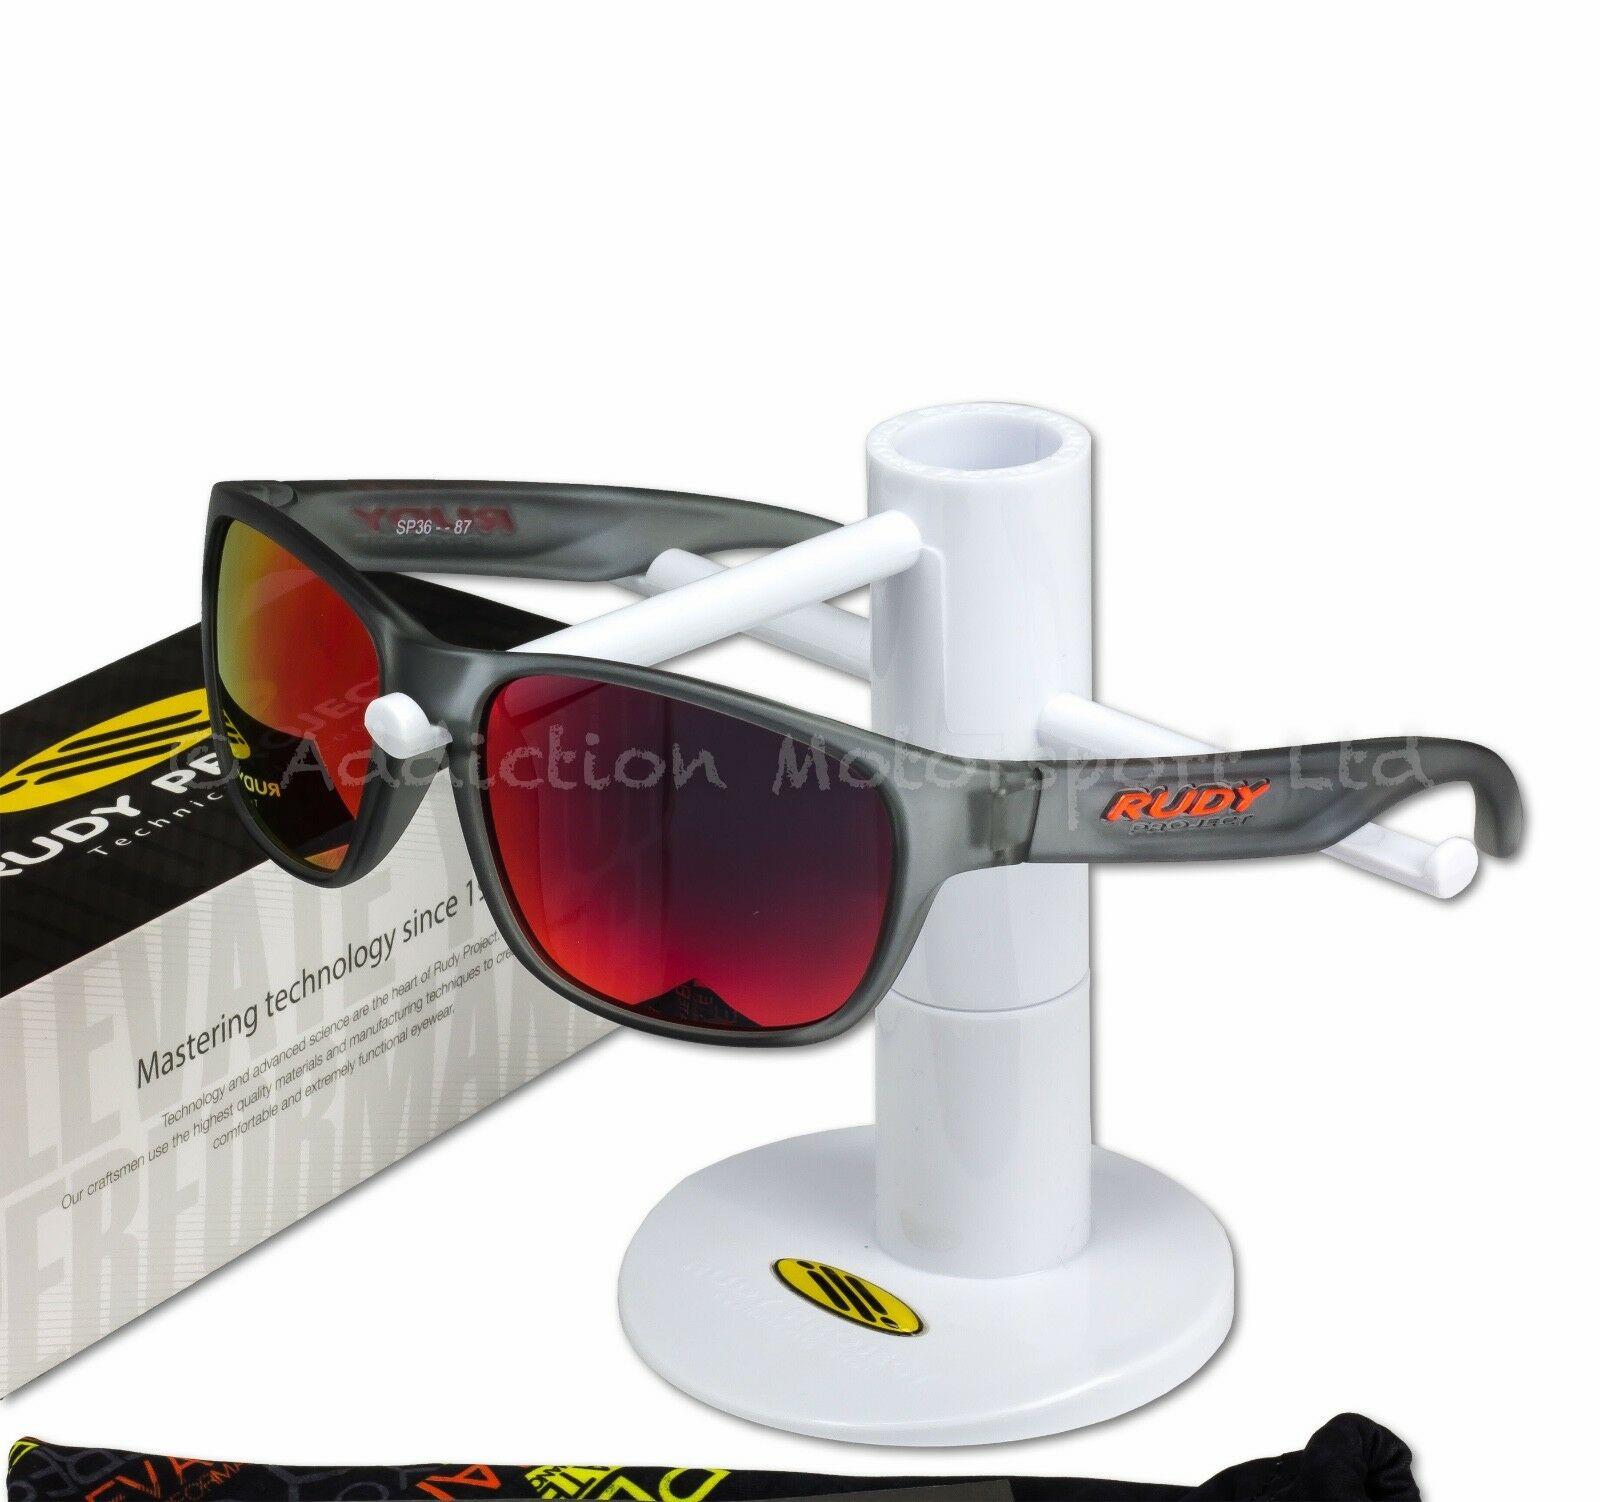 d0cacaf6f The Spinhawk SP313887 comes with an official Rudy Project Sunglasses 1 year  guarantee.